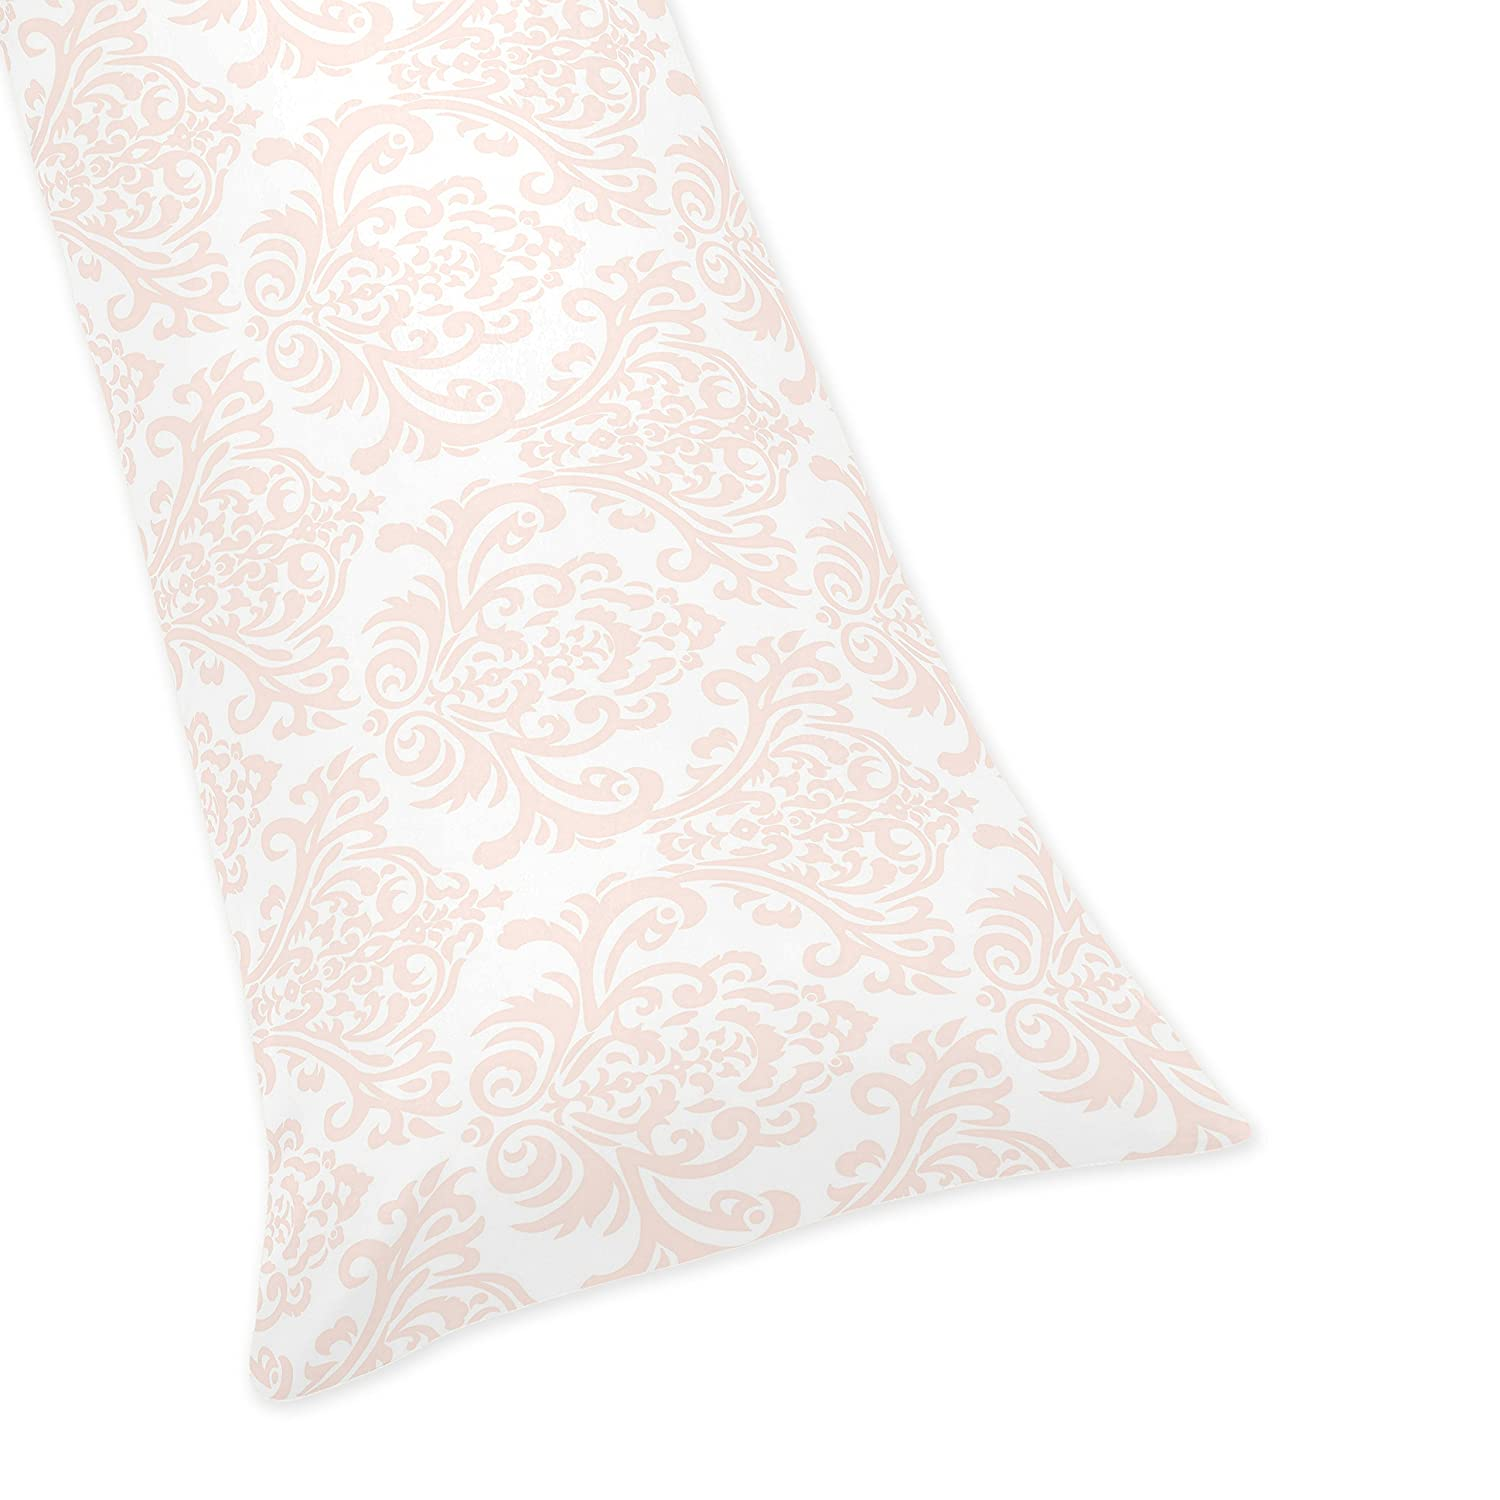 Sweet Jojo Designs Pink Damask Full Length Double Zippered Body Pillow Case Cover for Amelia Collection